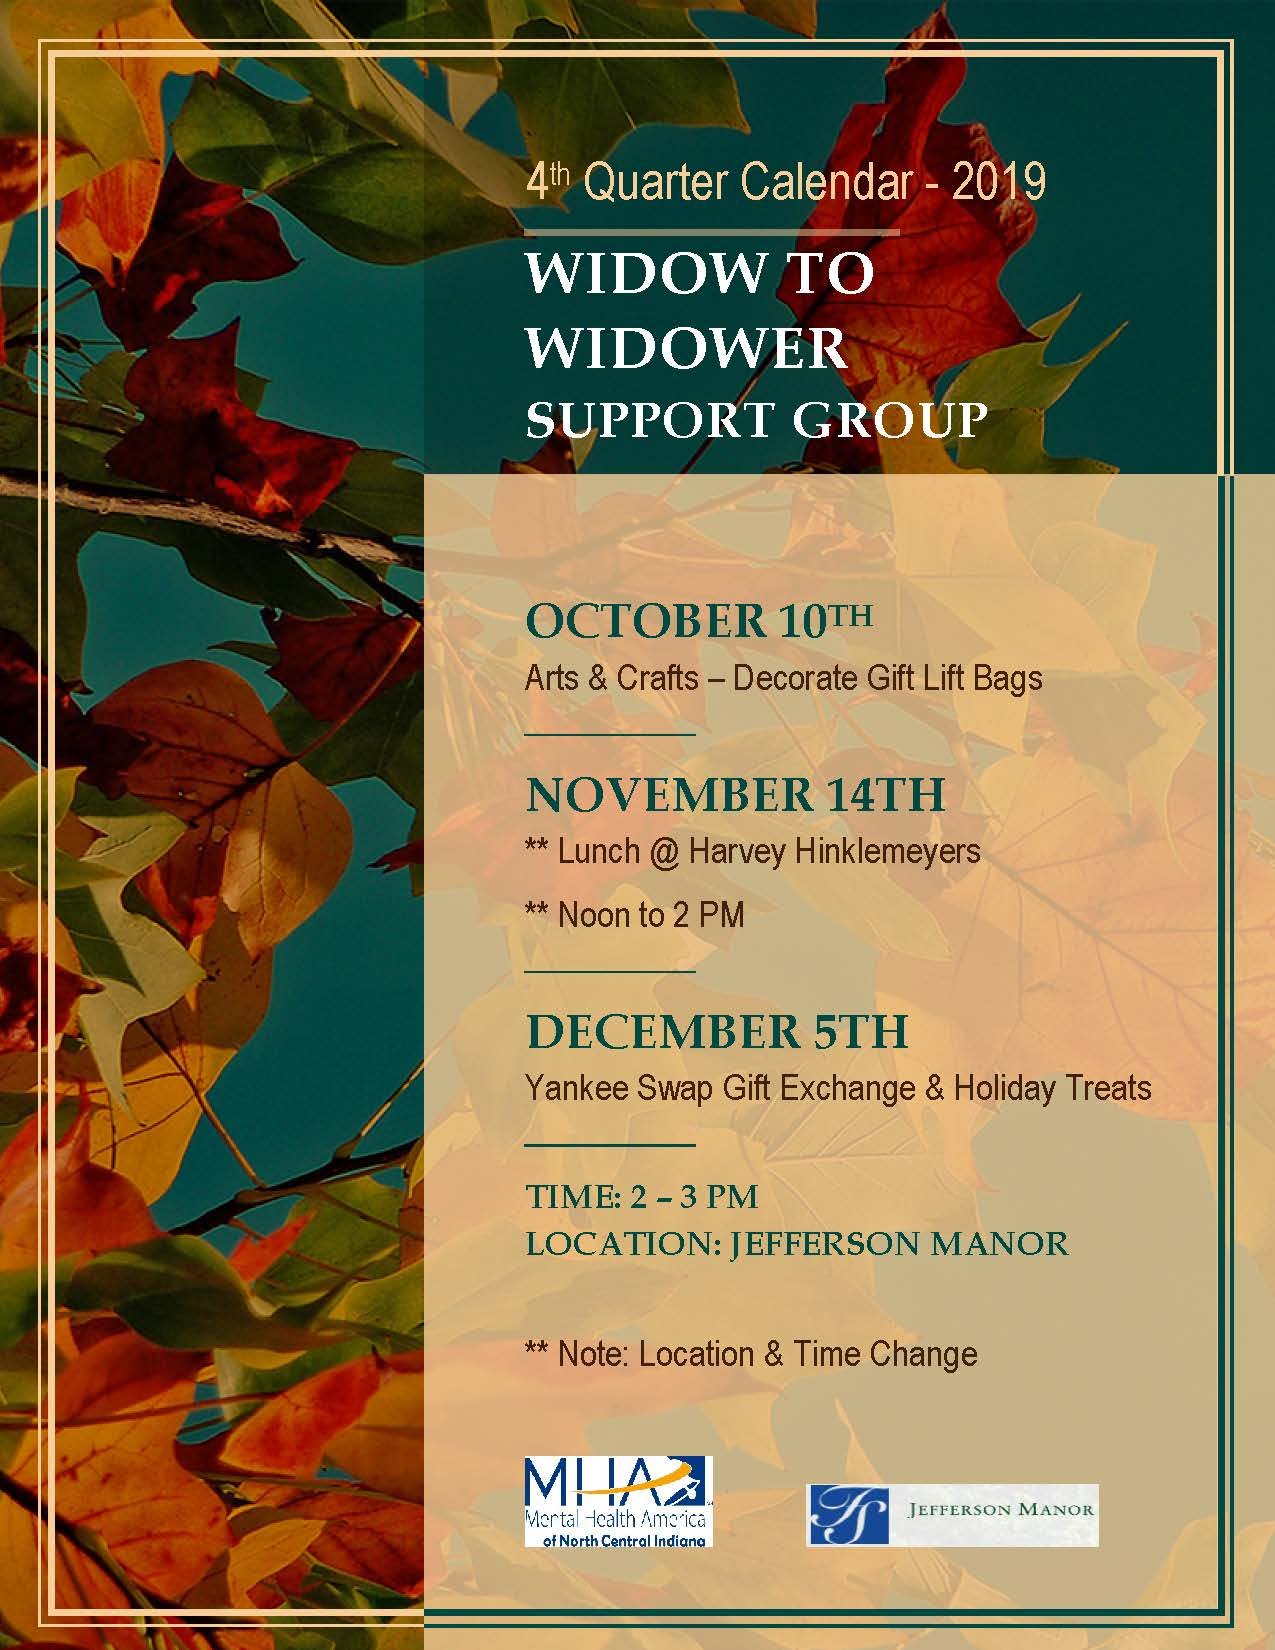 Widow to Widower Support Group